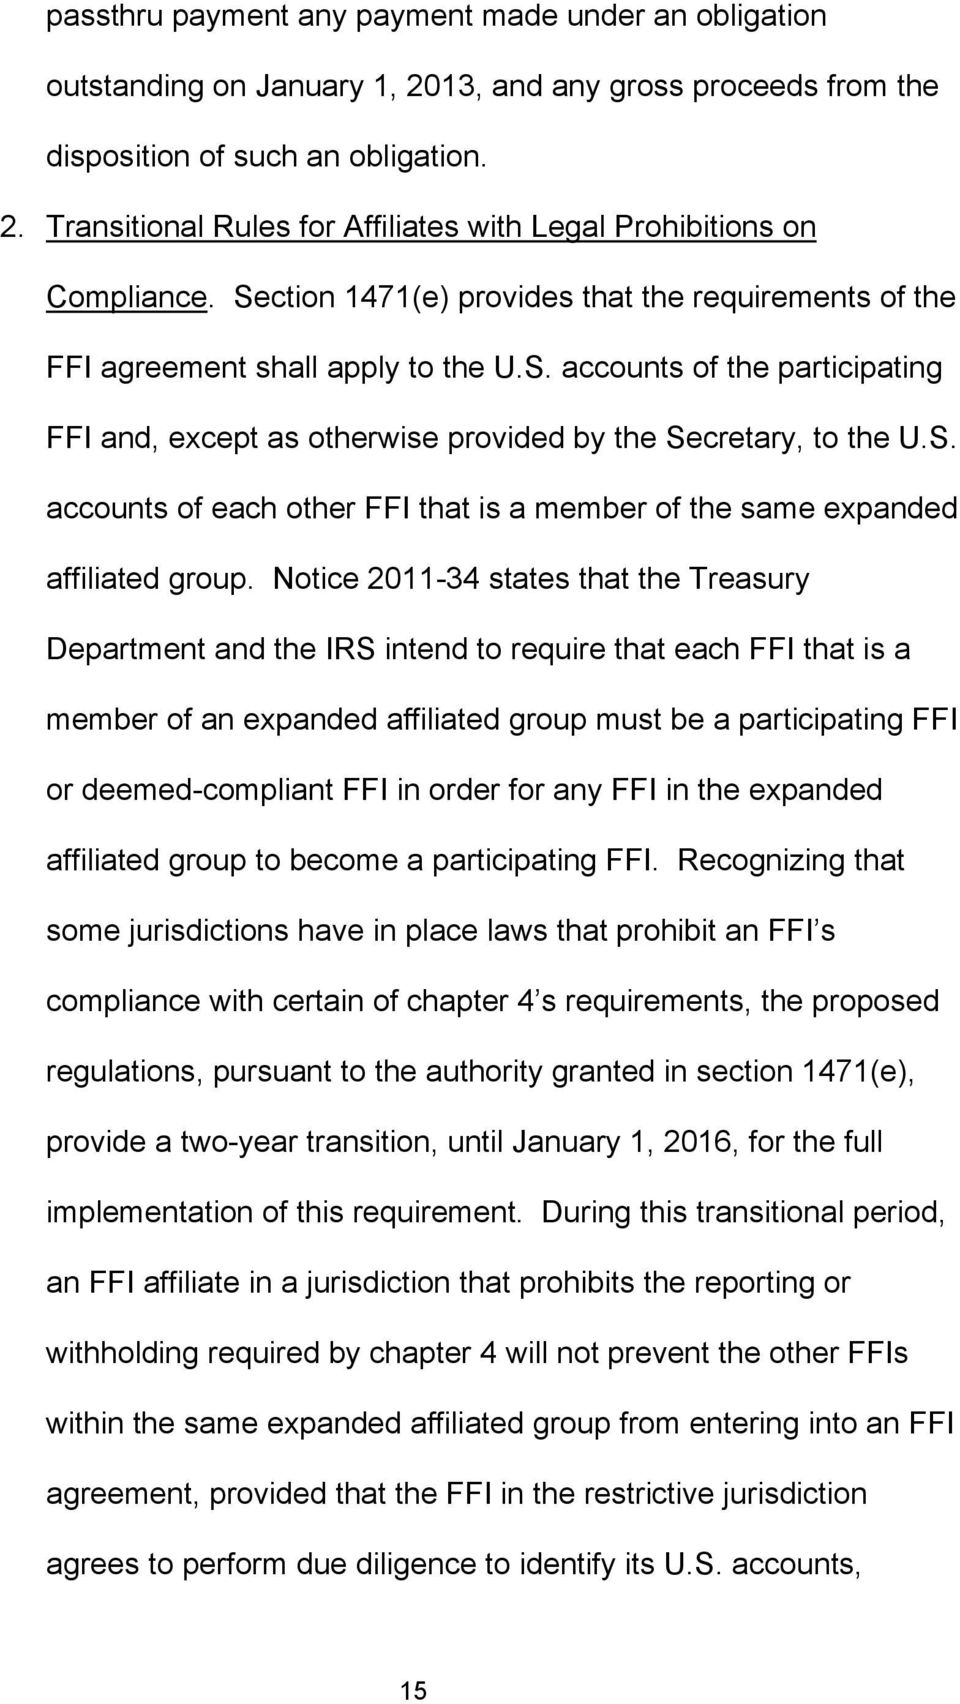 Notice 2011-34 states that the Treasury Department and the IRS intend to require that each FFI that is a member of an expanded affiliated group must be a participating FFI or deemed-compliant FFI in